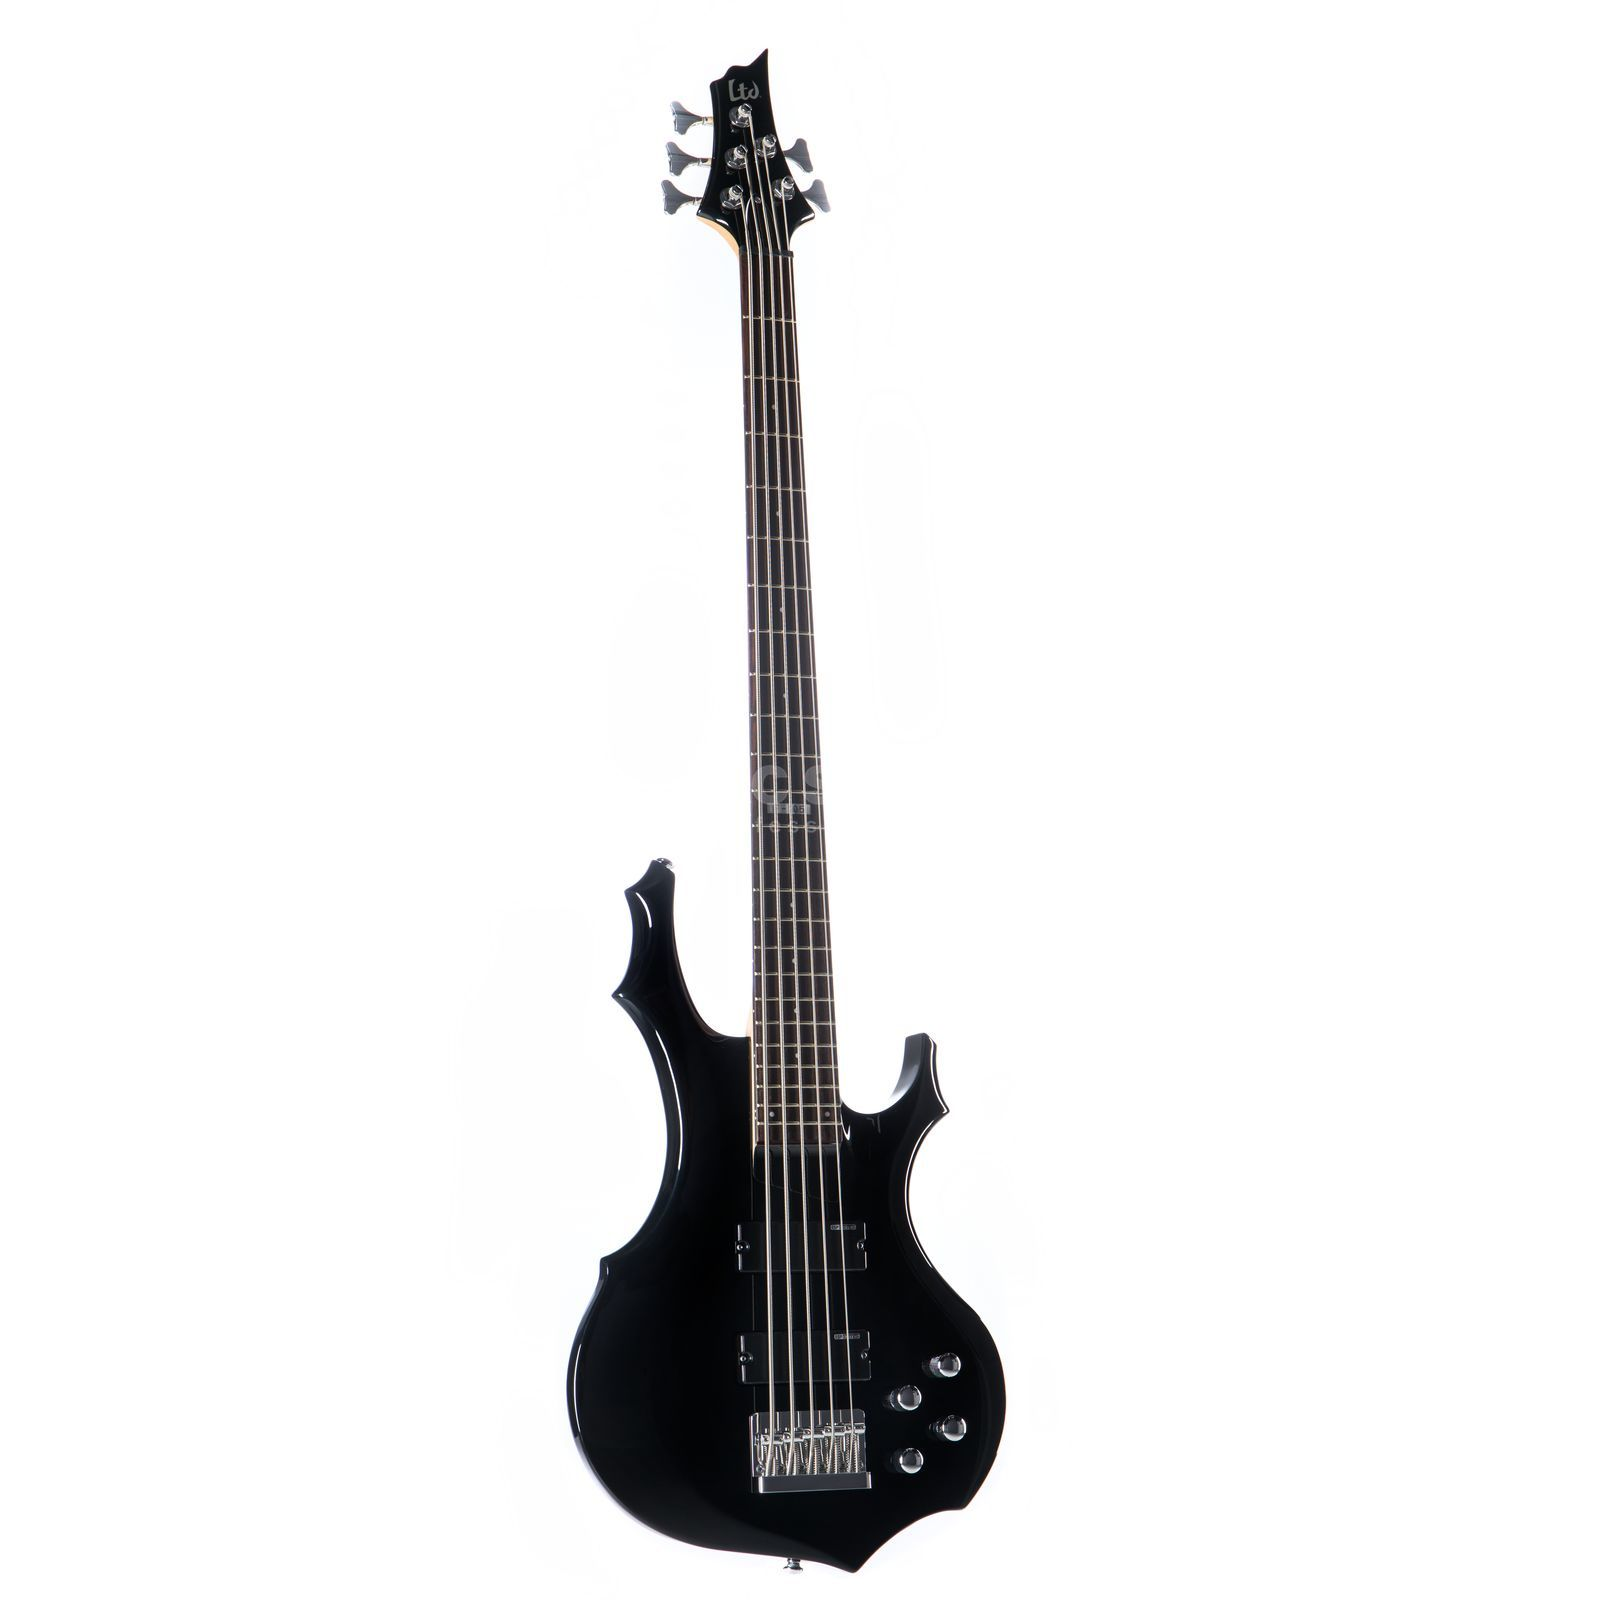 ESP LTD F-105 Bass Guitar, Black    Produktbillede